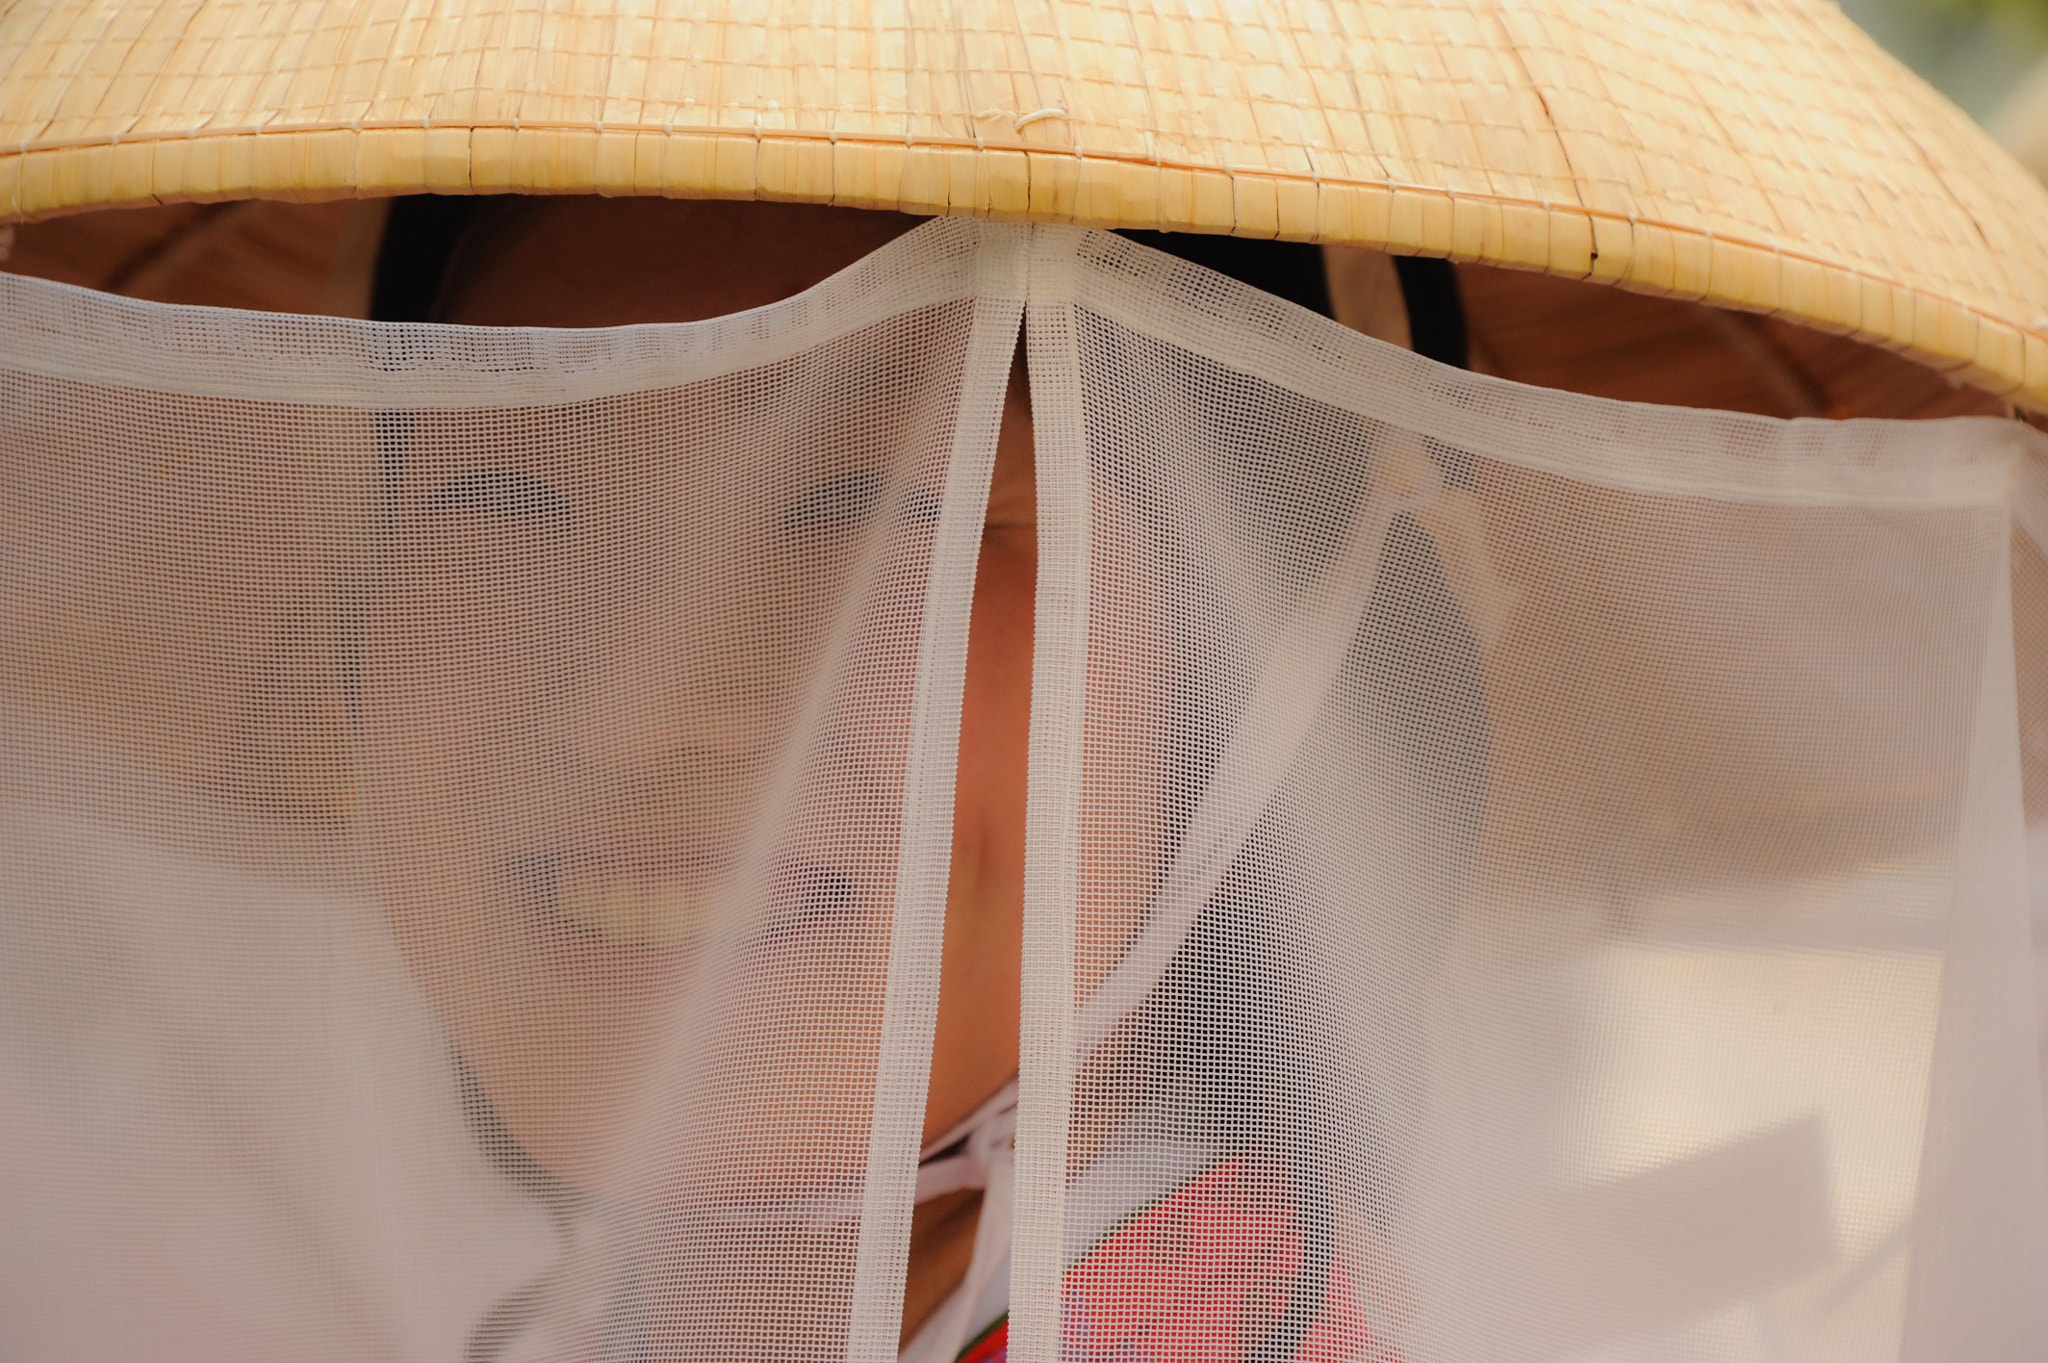 Photograph Smile from Japan by Sofia Elghazzali on 500px